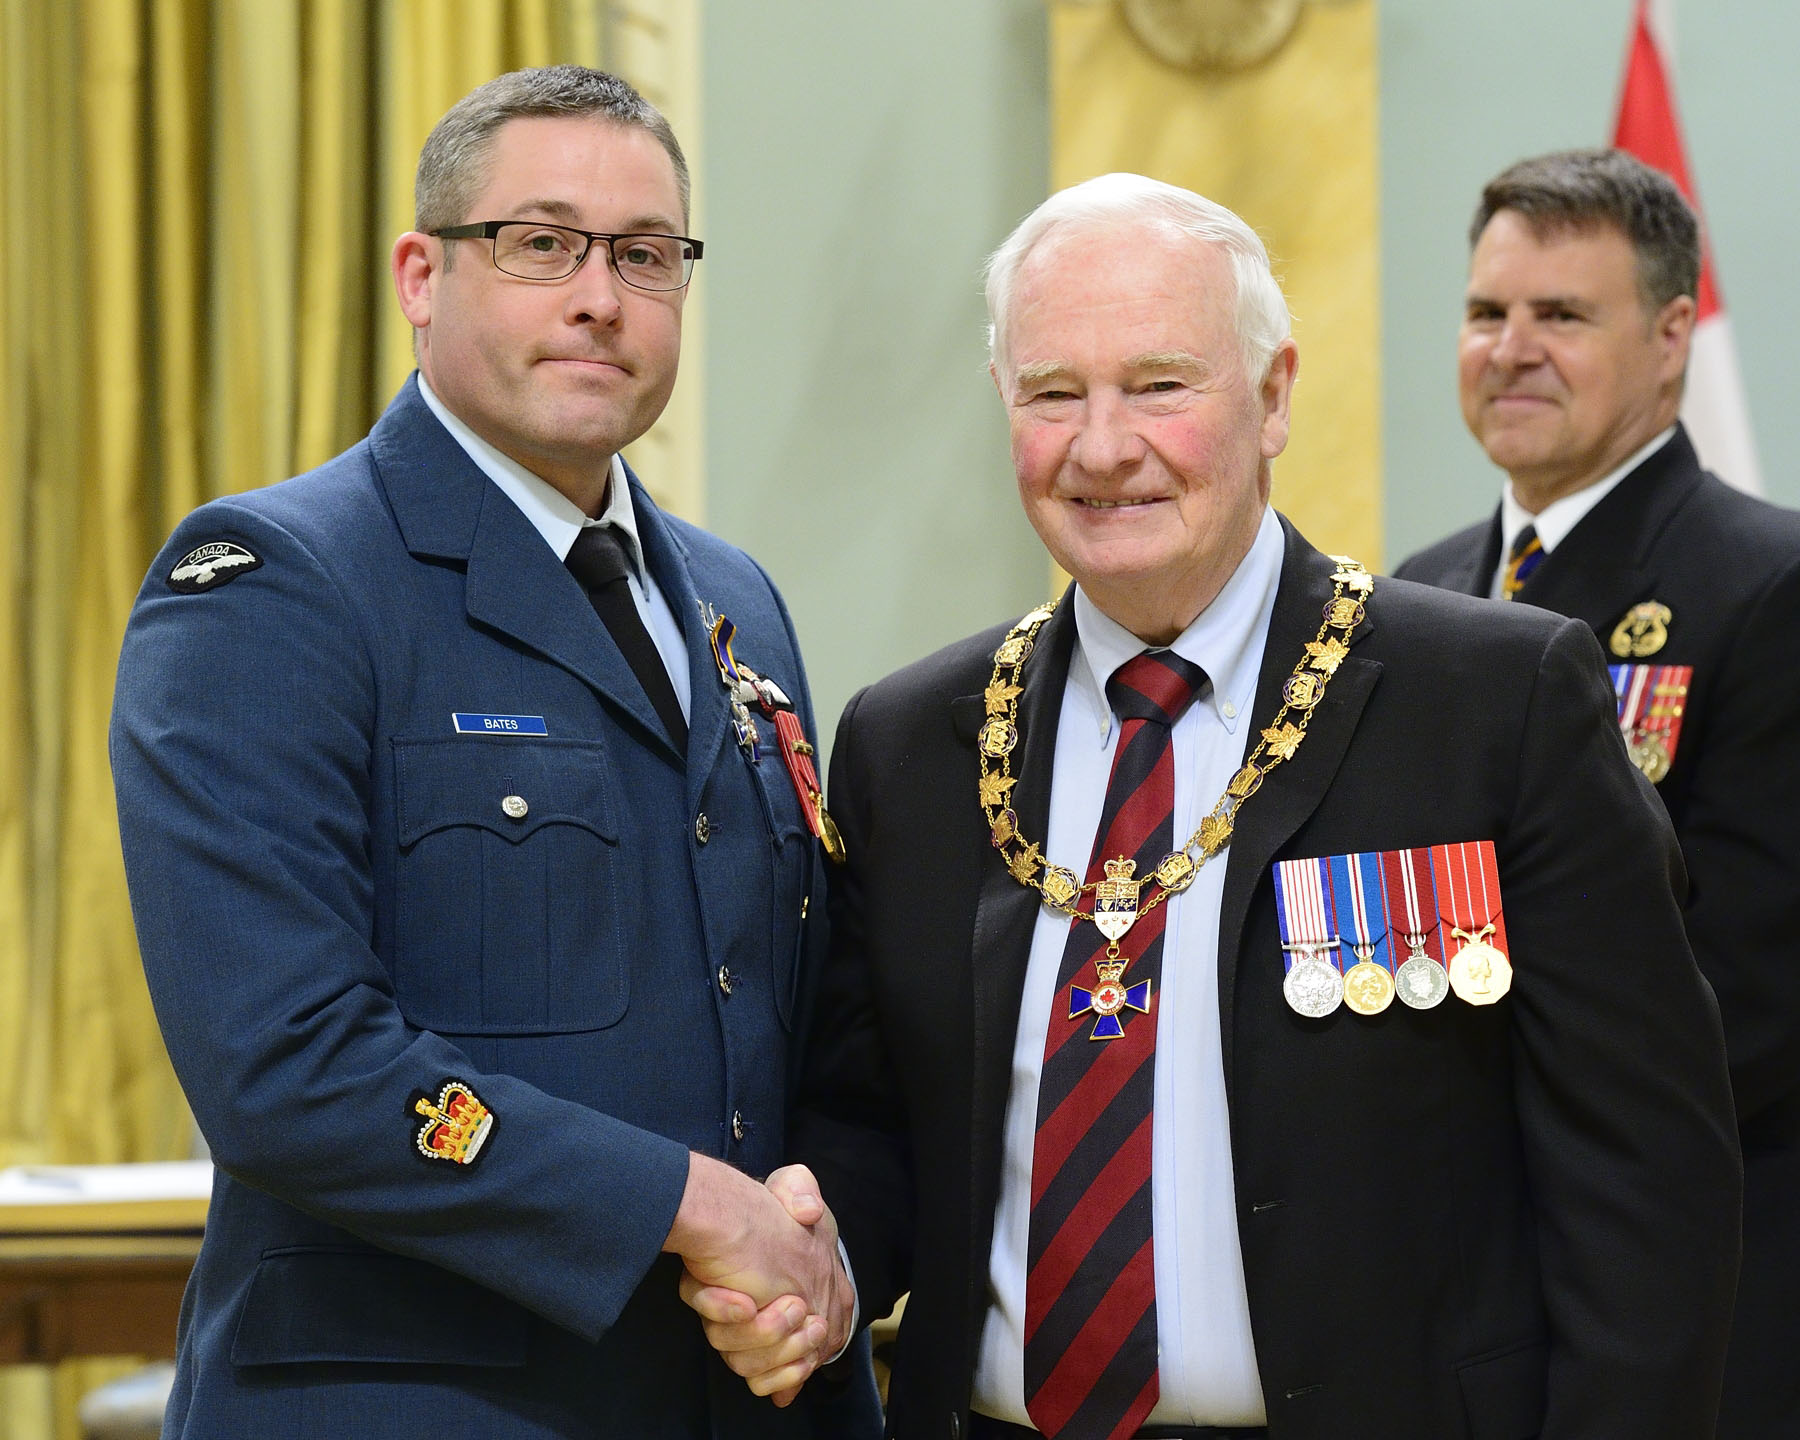 His Excellency presented the Order of Military Merit at the Member level (M.M.M.) to Sergeant Stephen Claude Joseph Bates, M.M.M., C.D., from 413 Transport and Rescue Squadron in Greenwood, Nova Scotia.